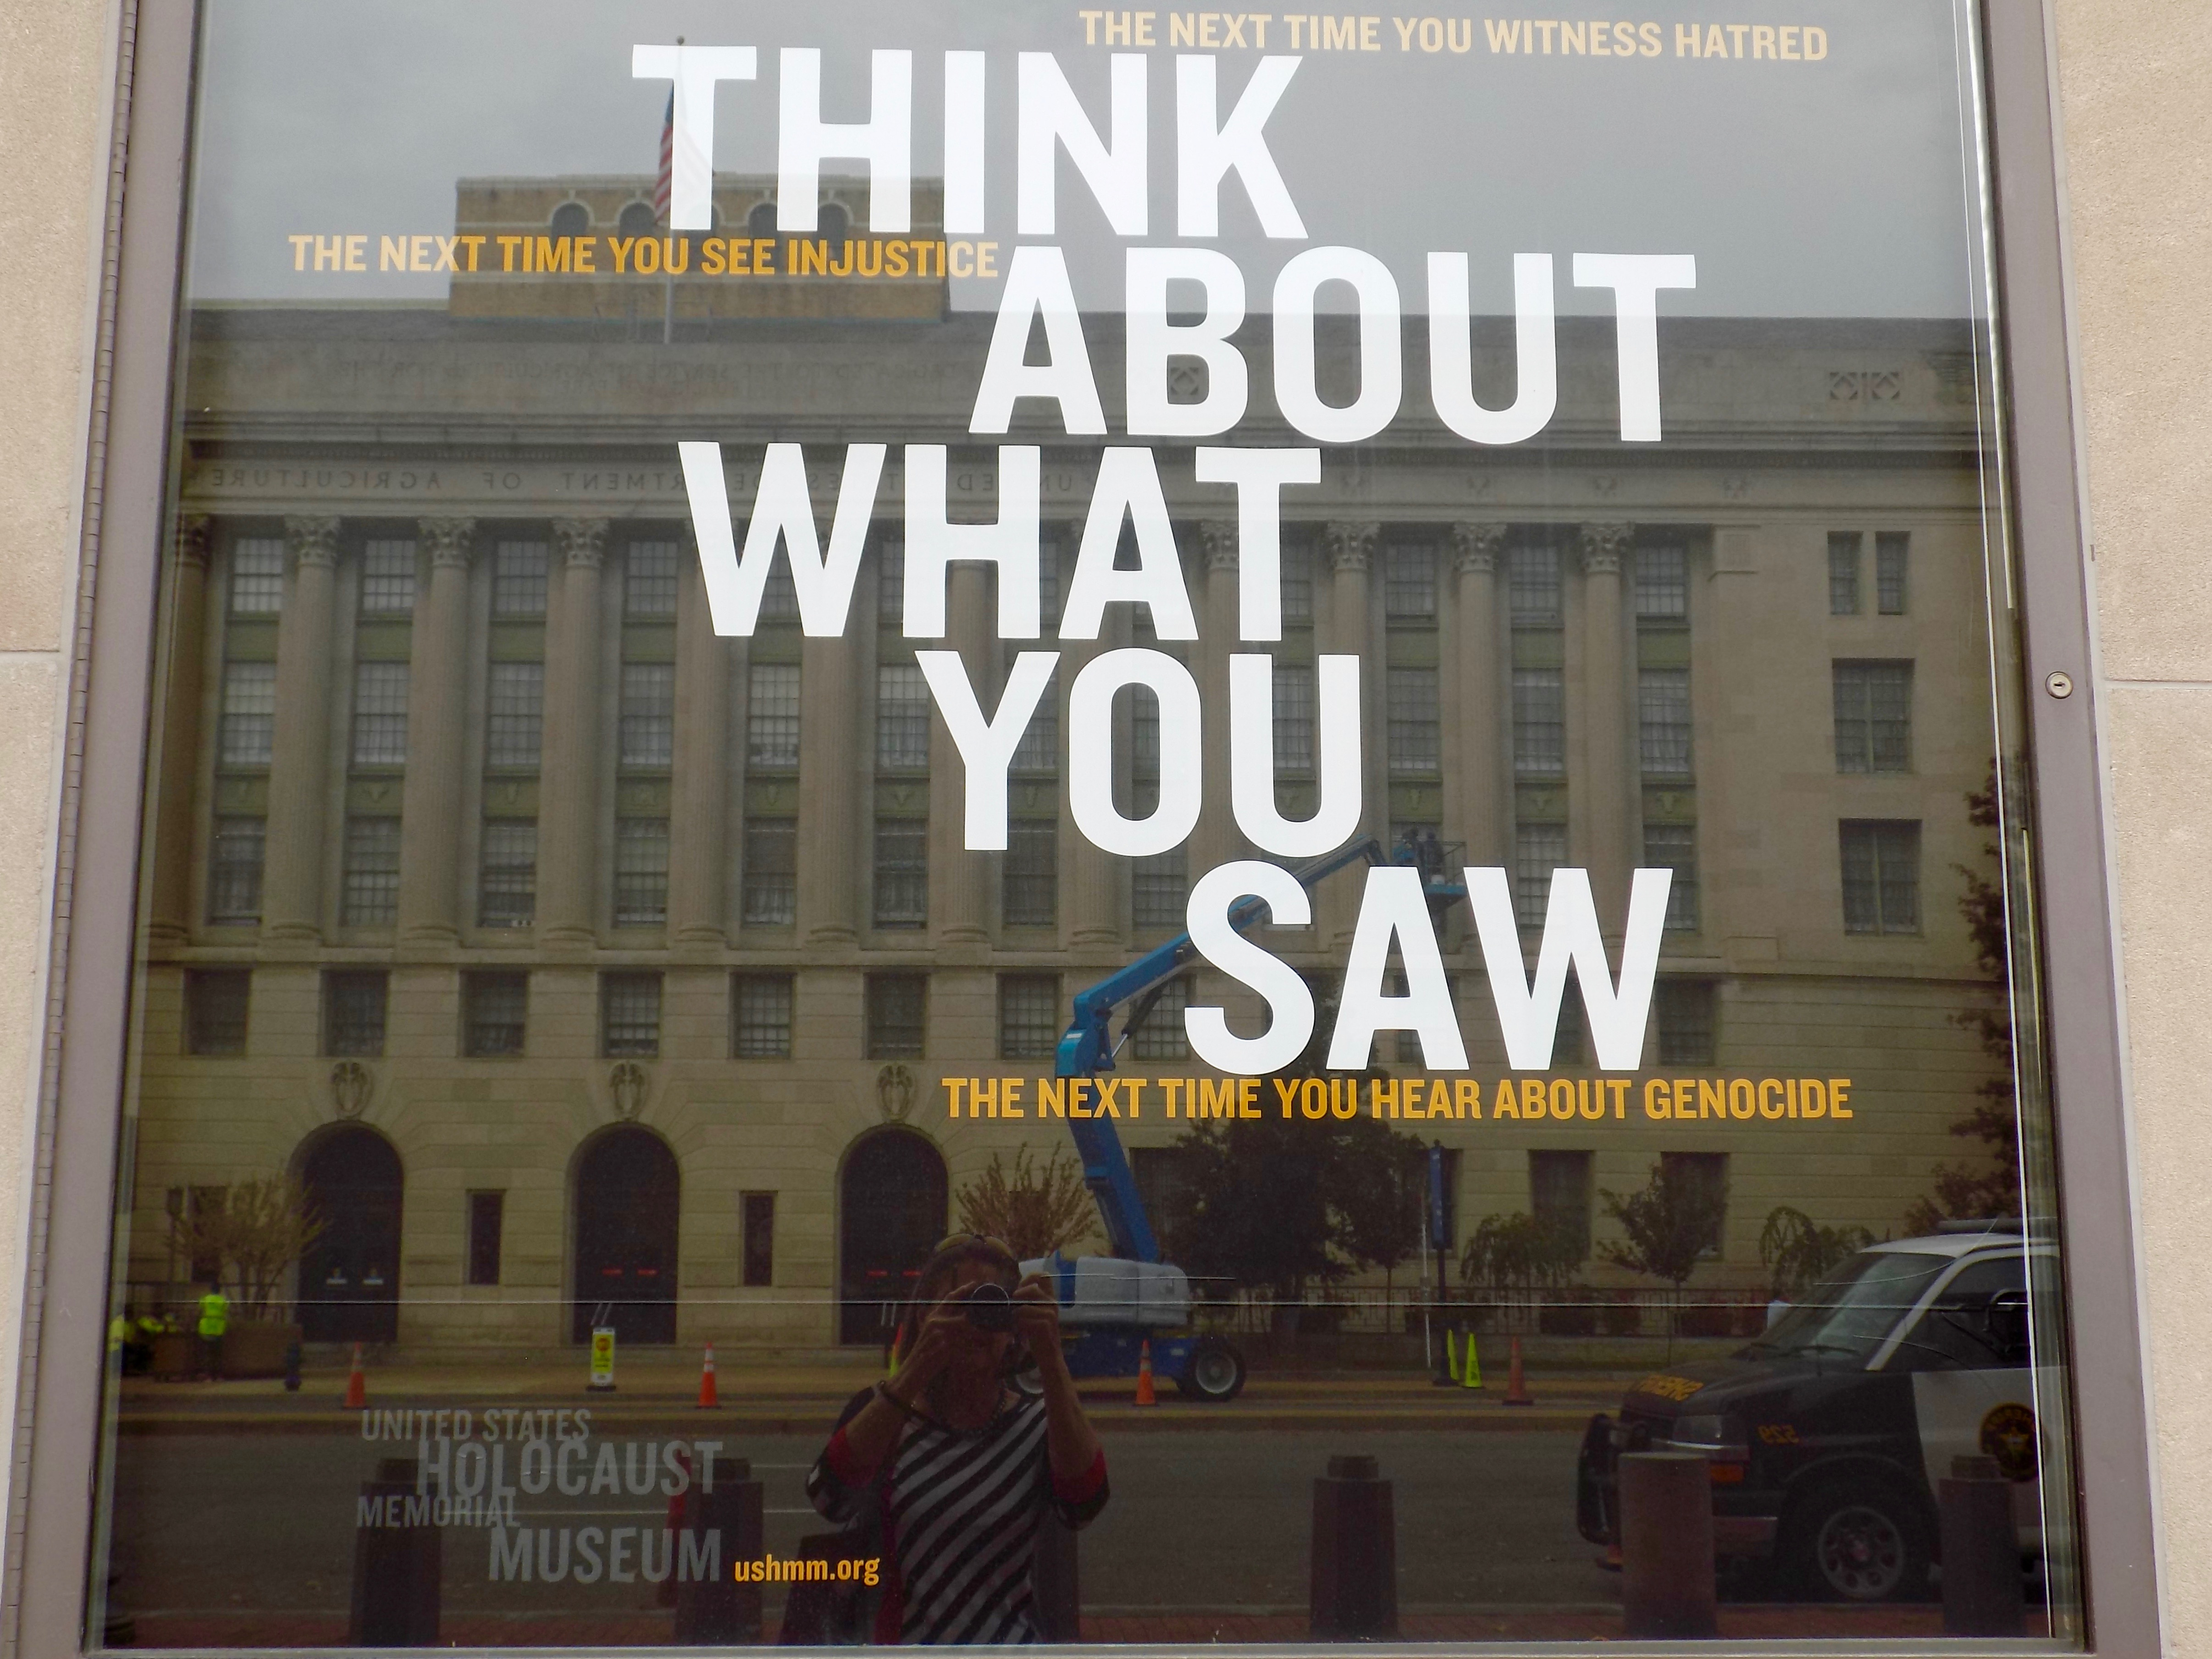 WHEN LEAVING THE HOLOCAUST MUSEUM, VISITORS ARE GIVEN SOME FOOD FOR THOUGHT.